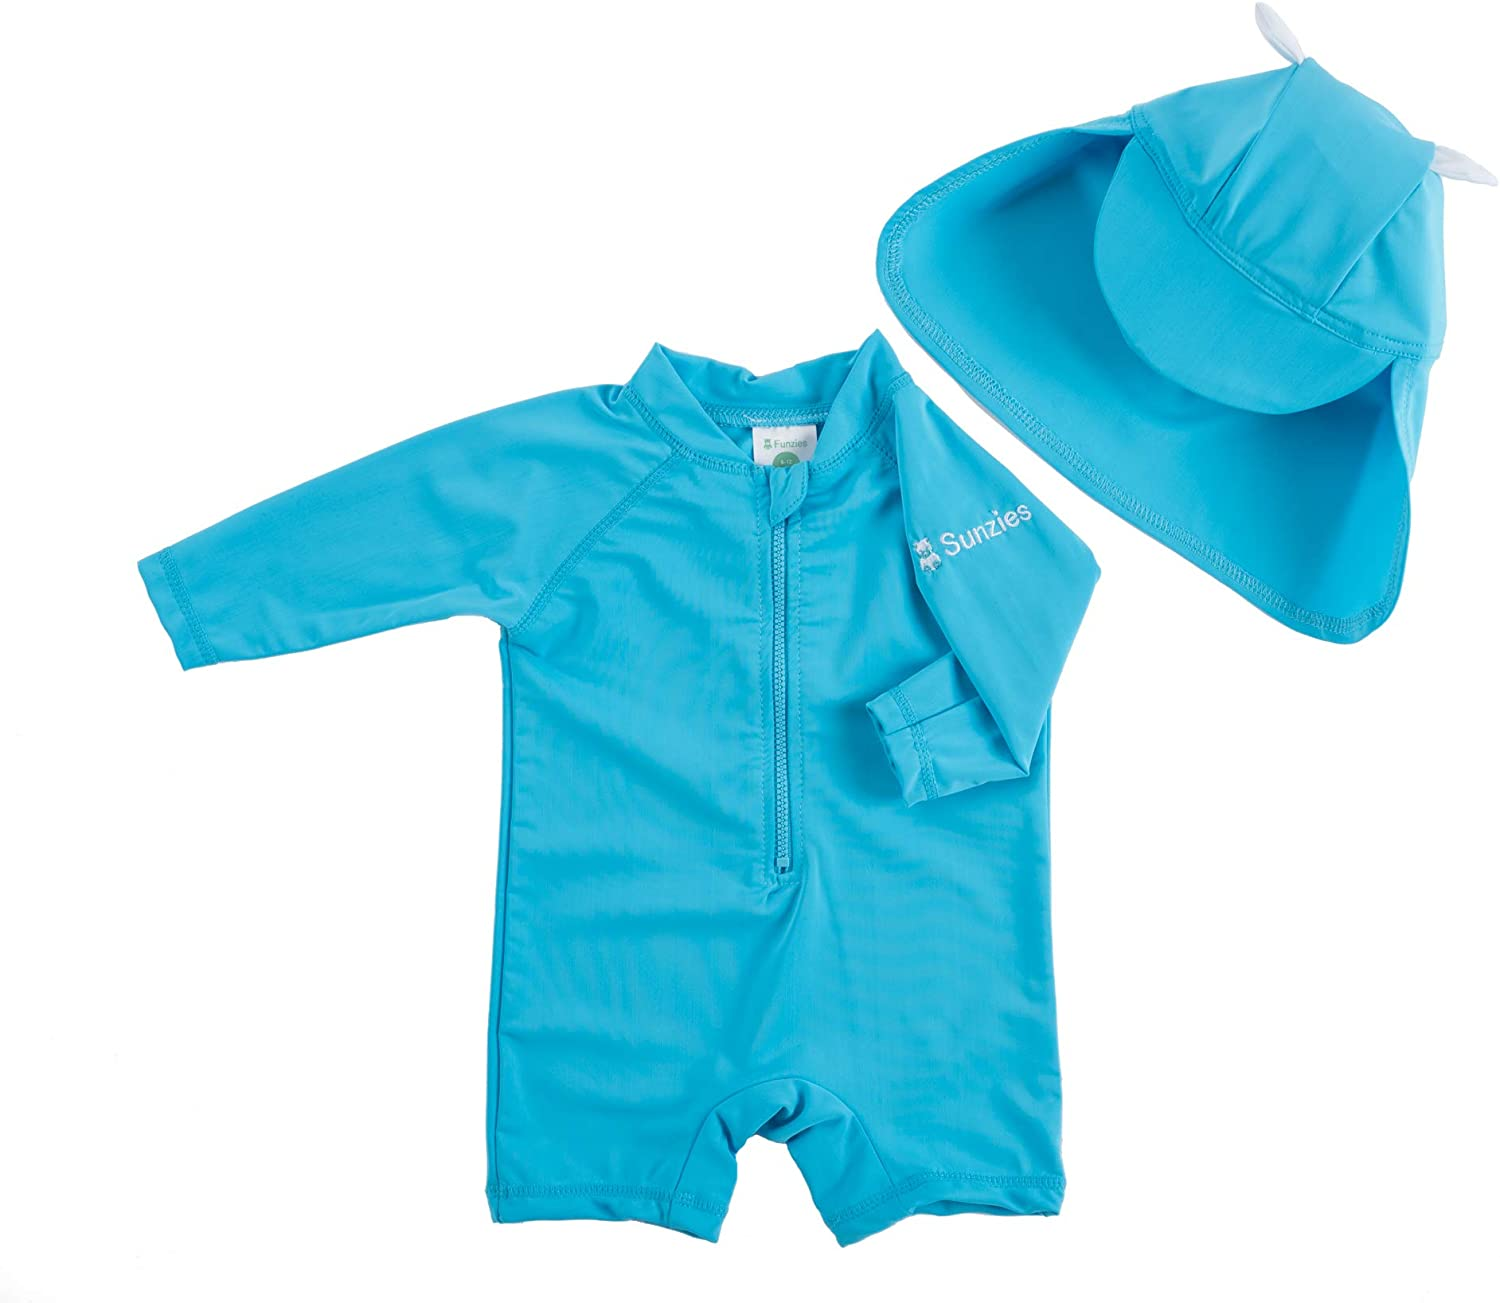 Sun Protective Long Sleeve Infant Sunsuit with Hat Sunzies One Piece Baby Swimsuit UPF 50